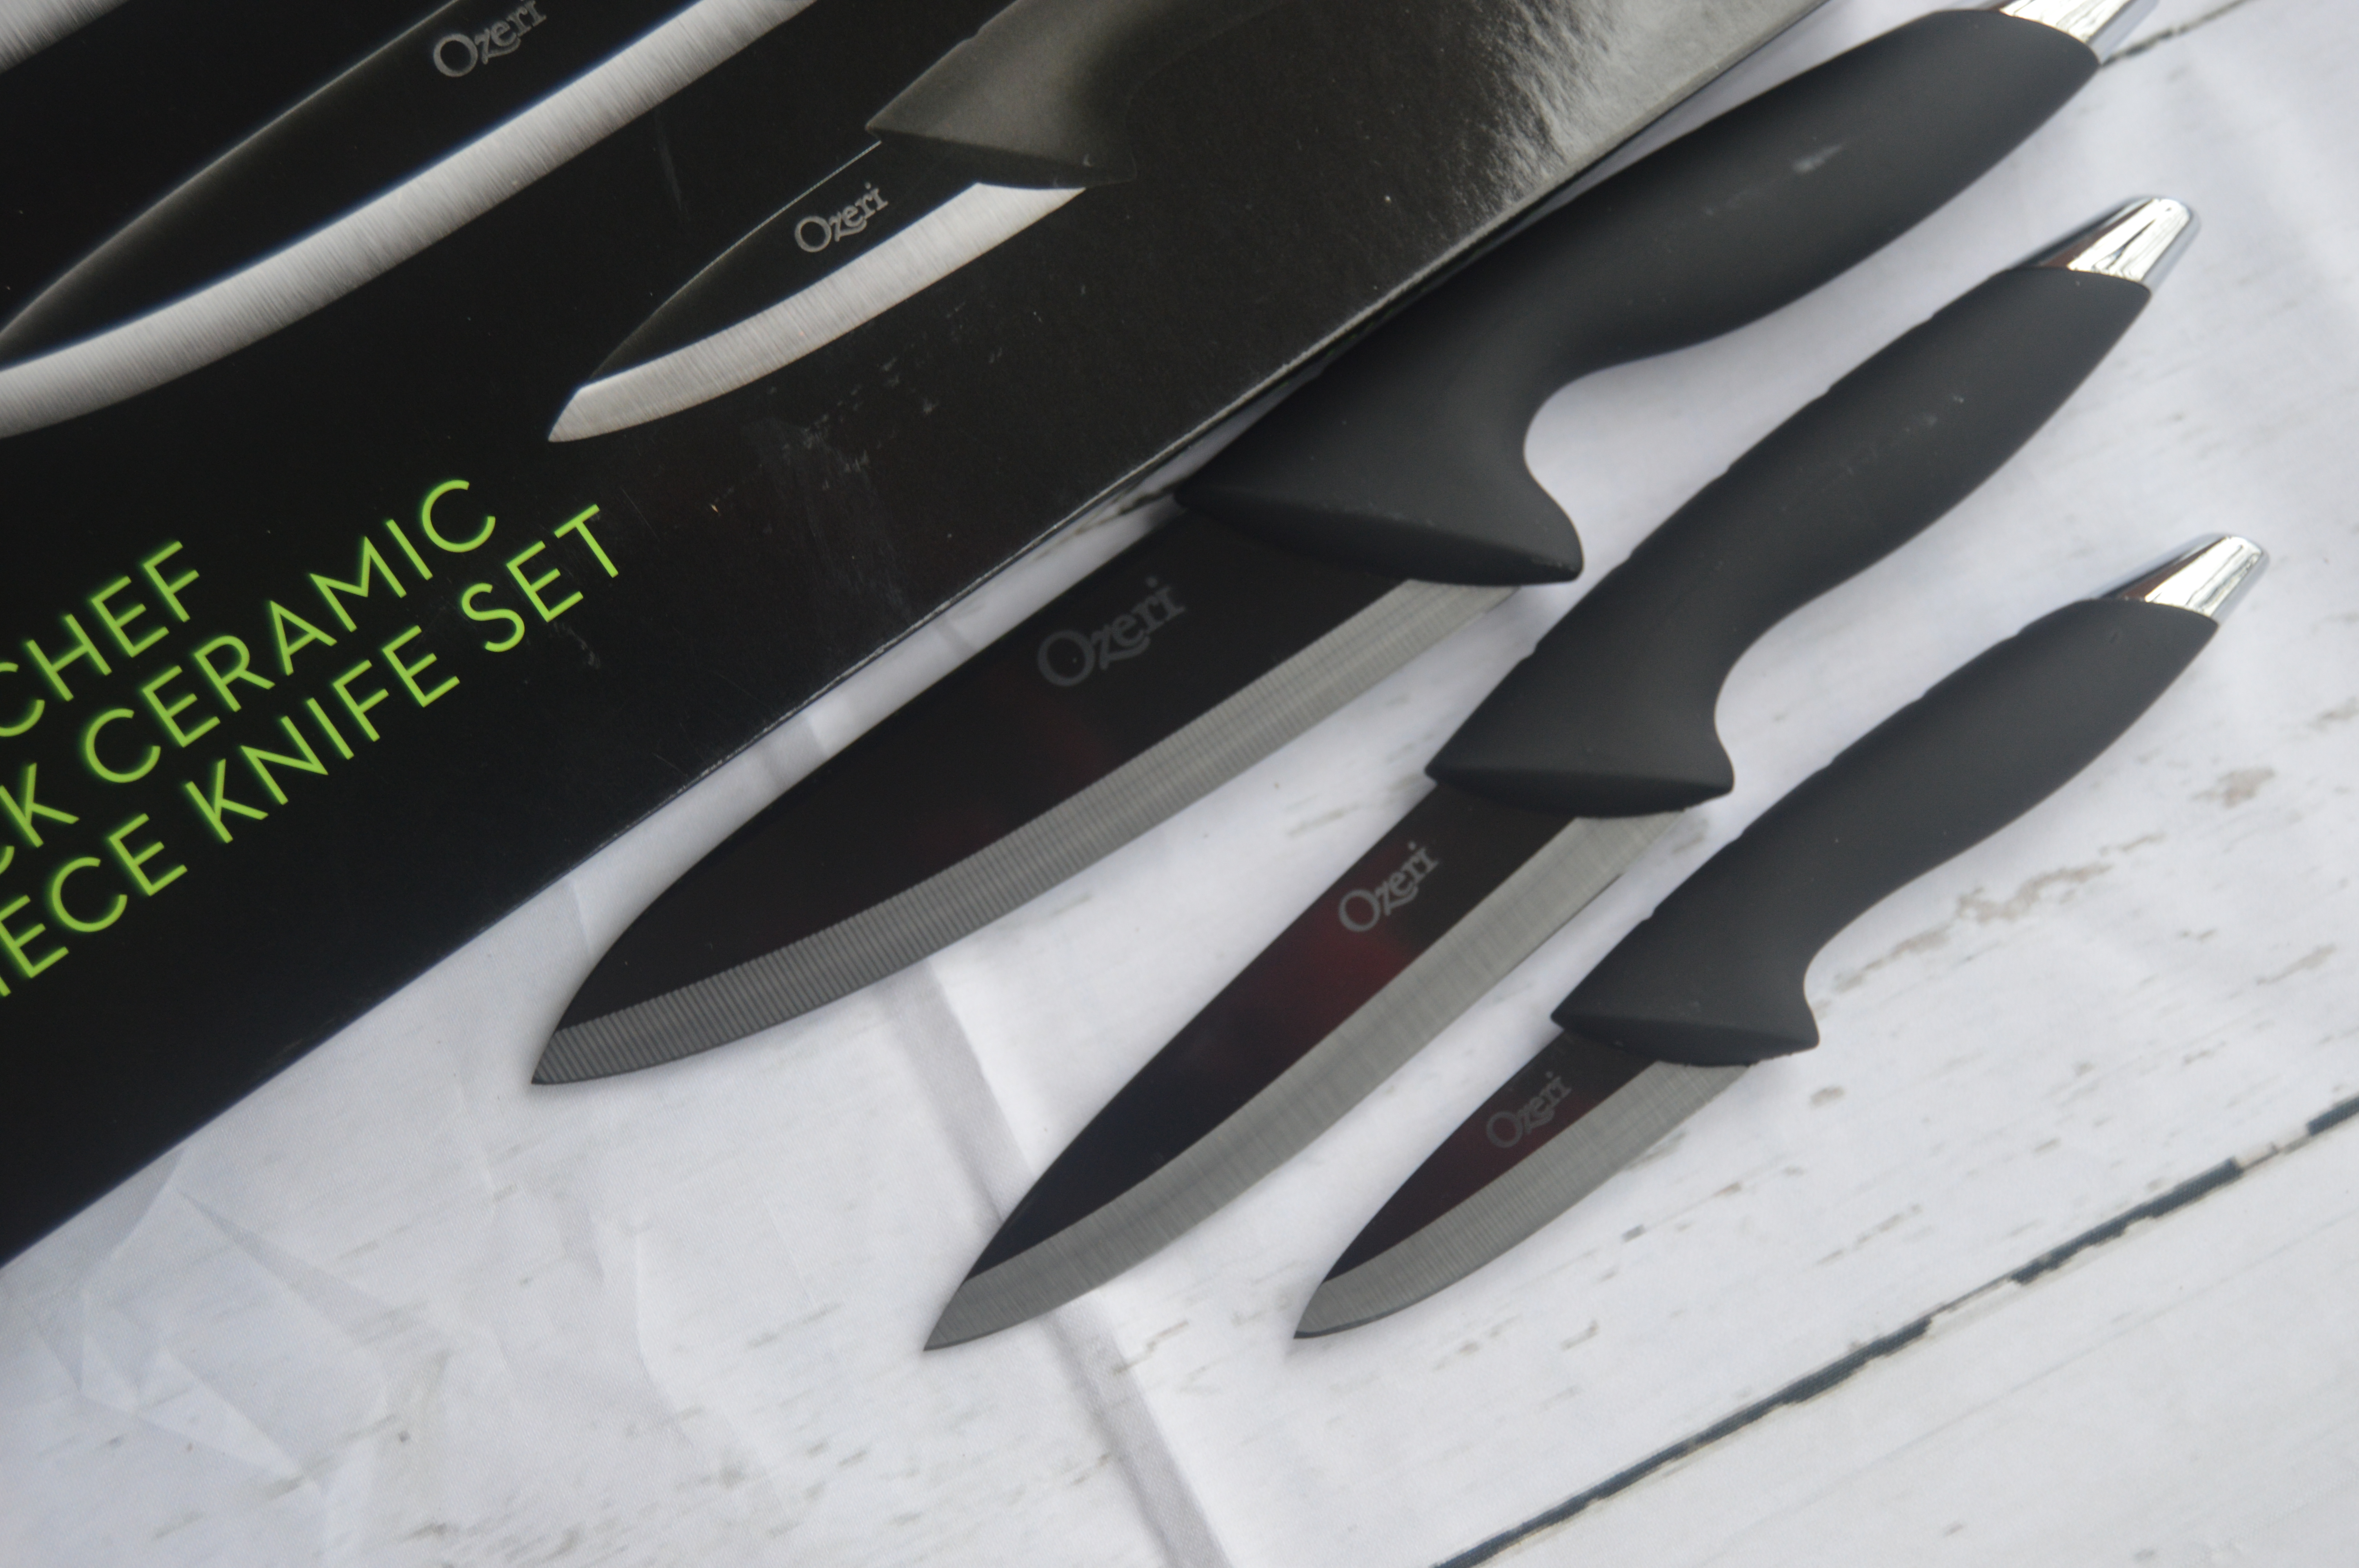 This Set Was A Great Addition To Our Current Knives. My Sister Gifted Me A  Really Nice Set Over The Holidays So I Had Mainly Been Using Those.